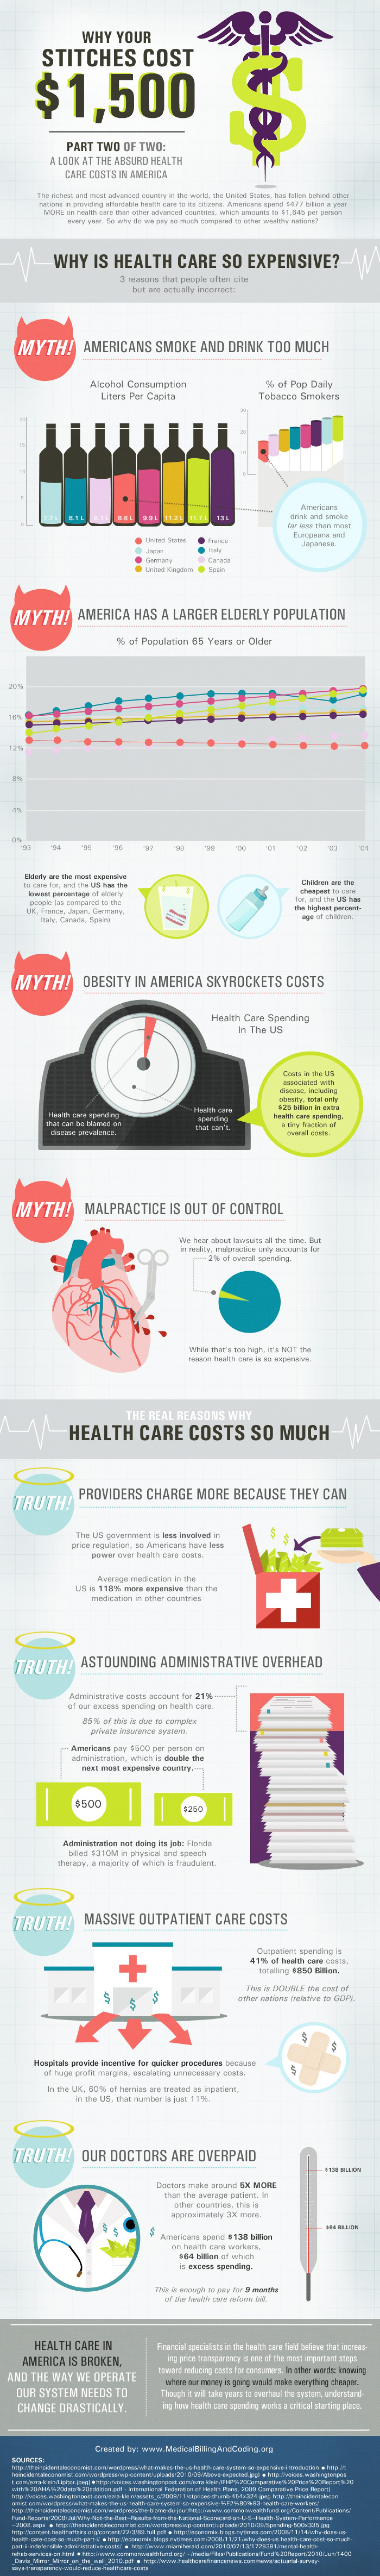 Expensive Health Care Cost In America Infographic (With